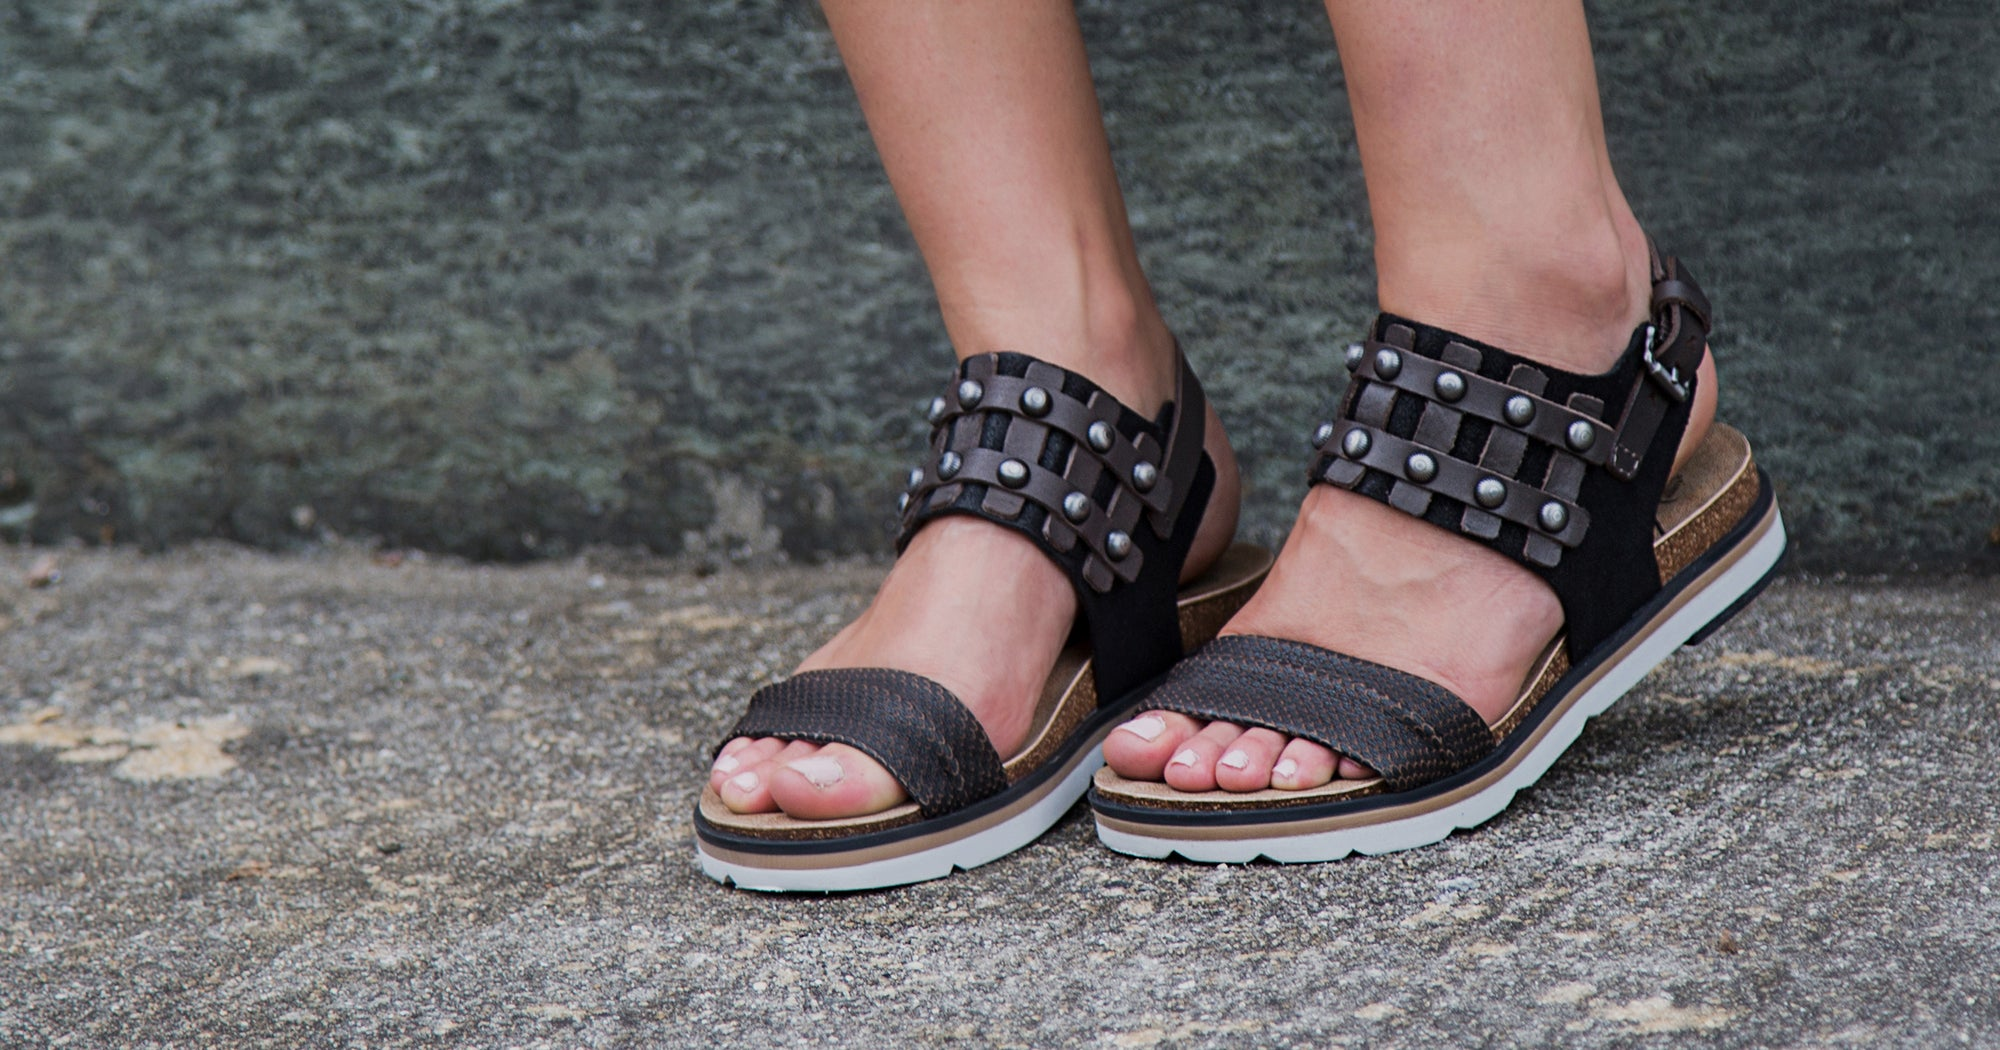 5 OTBT Flat Sandals to Wear This Season